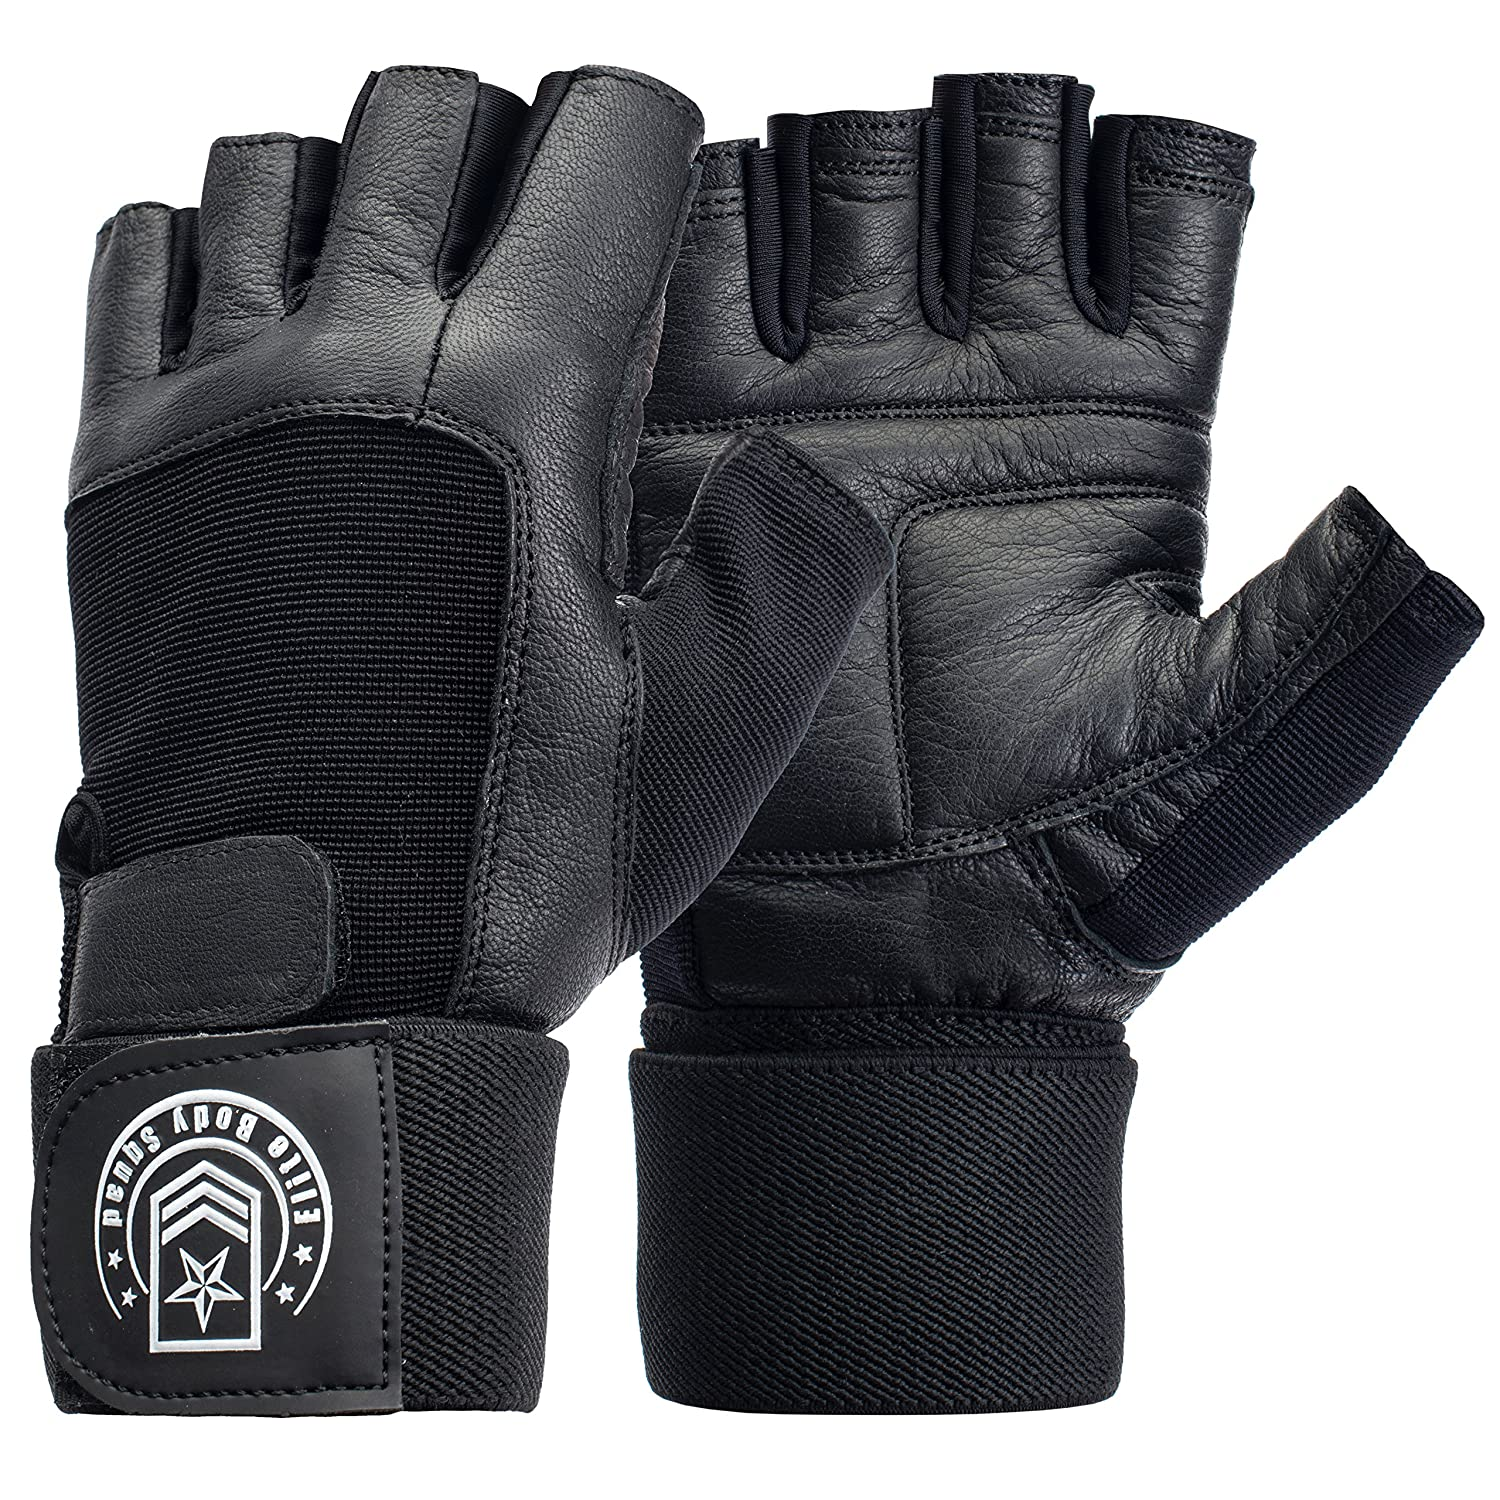 Weight Lifting Gloves - Soft Leather.